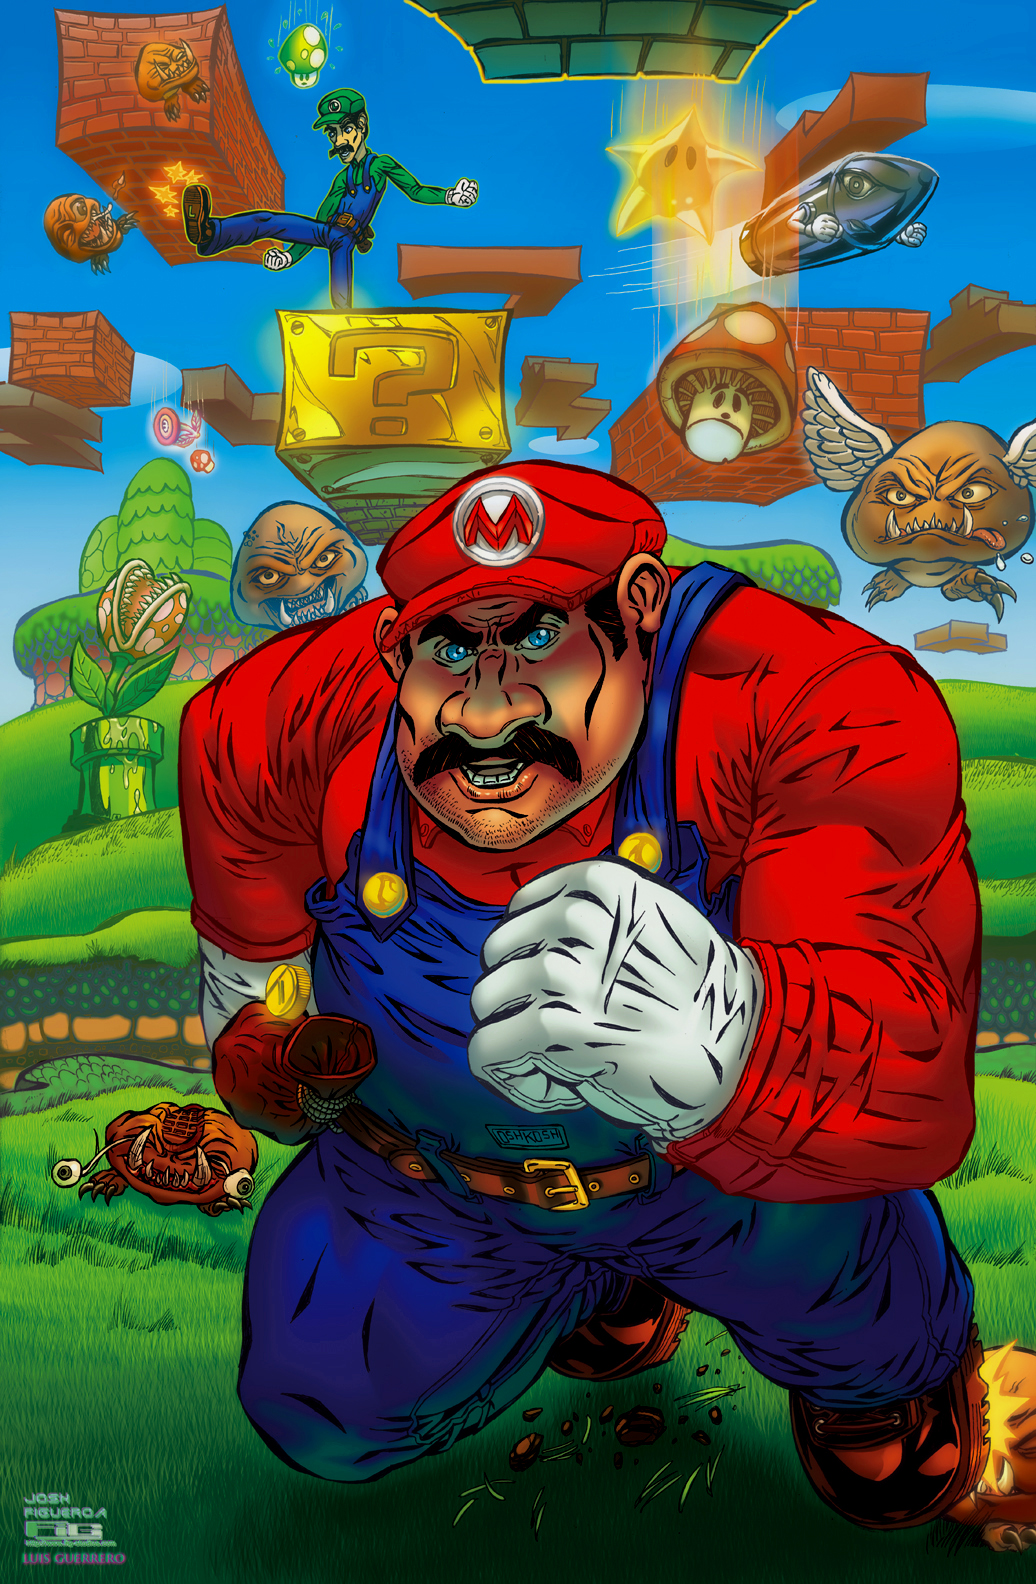 Super Mario Bros (fan art)